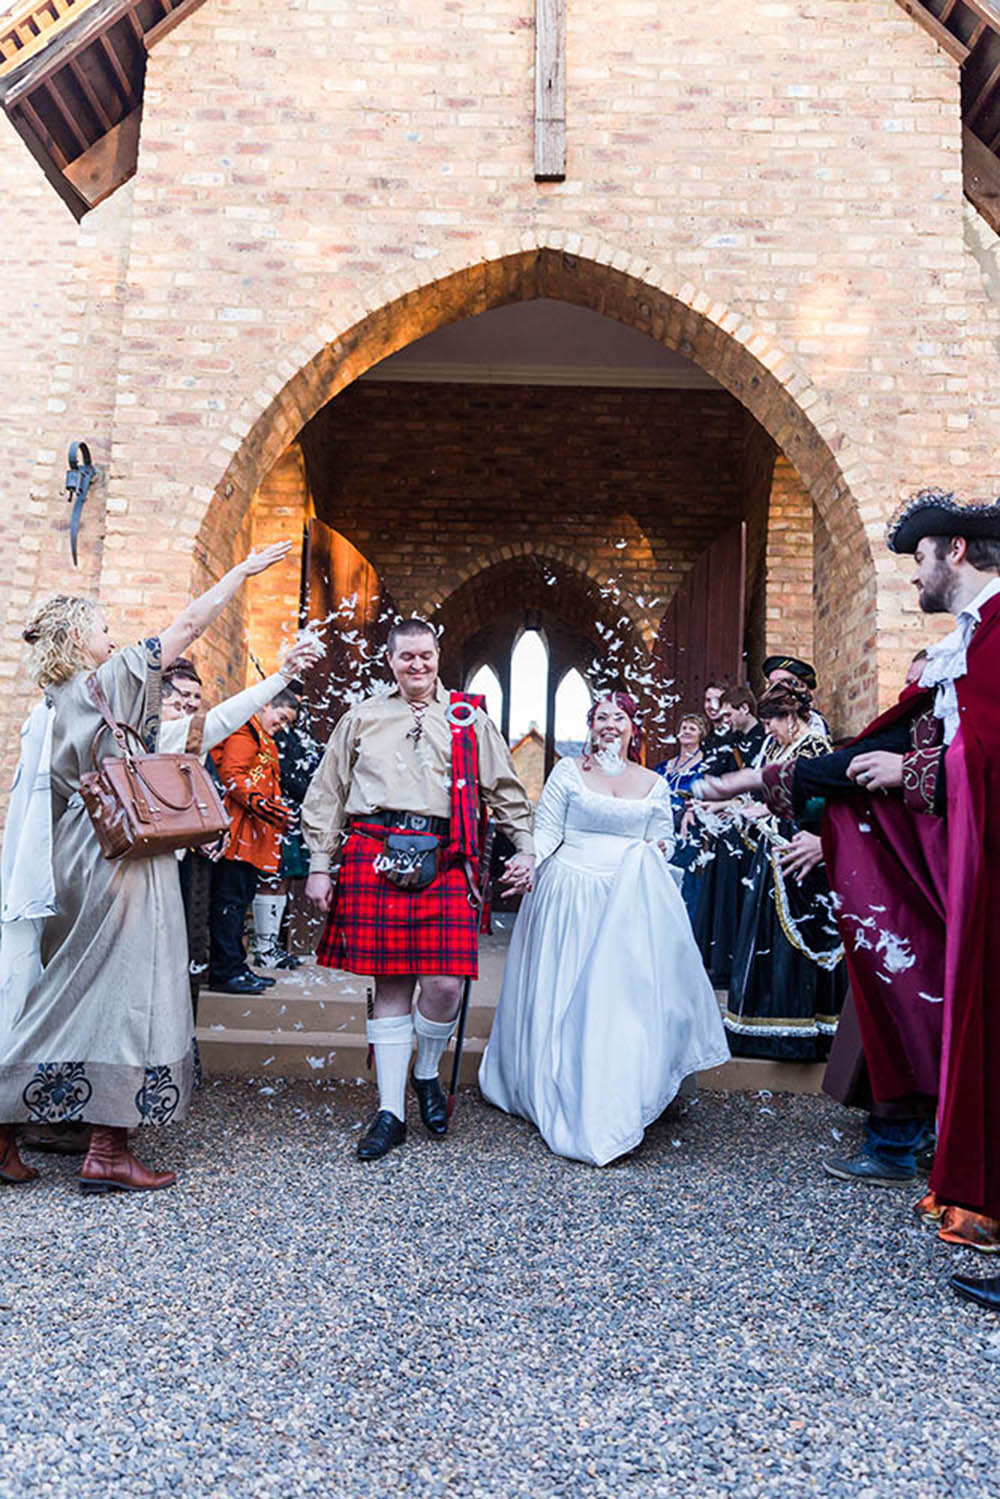 medieval-themed-wedding-medieval-wedding-dgr-photography-castle-wedding-76